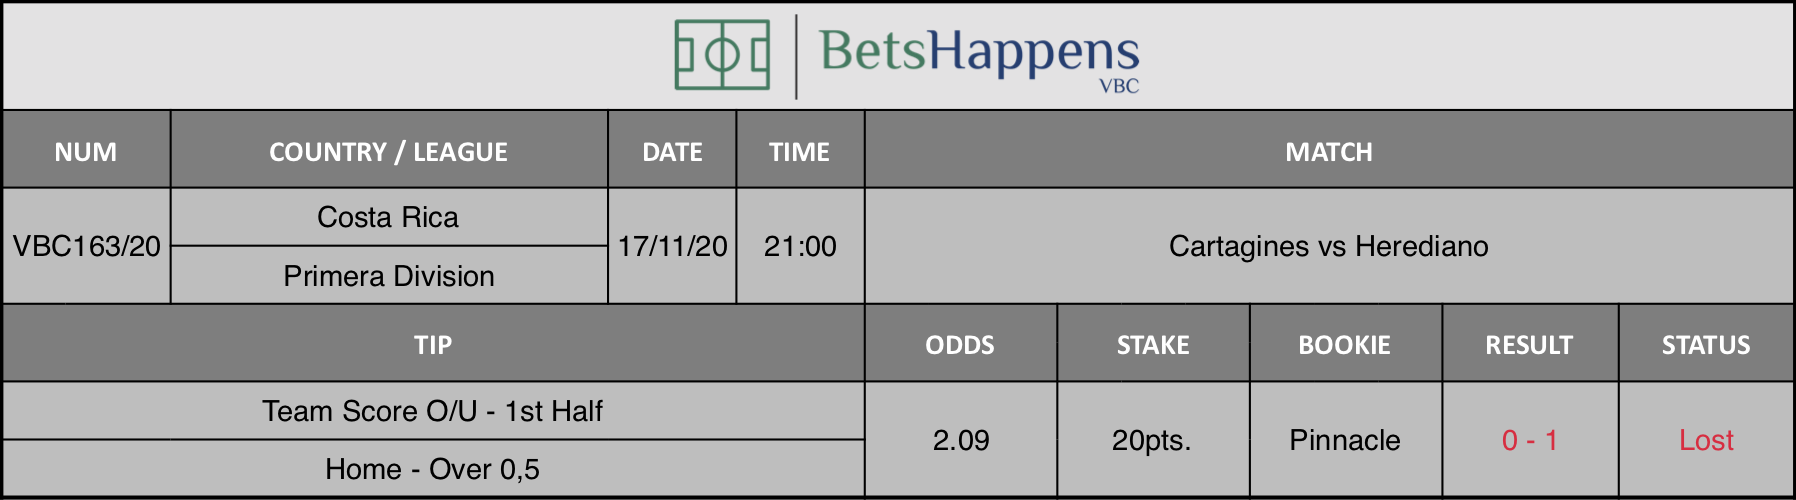 Results of our tip for the Cartagines vs Herediano match where Team Score O/U - 1st Half  Home - Over 0,5 is recommended.